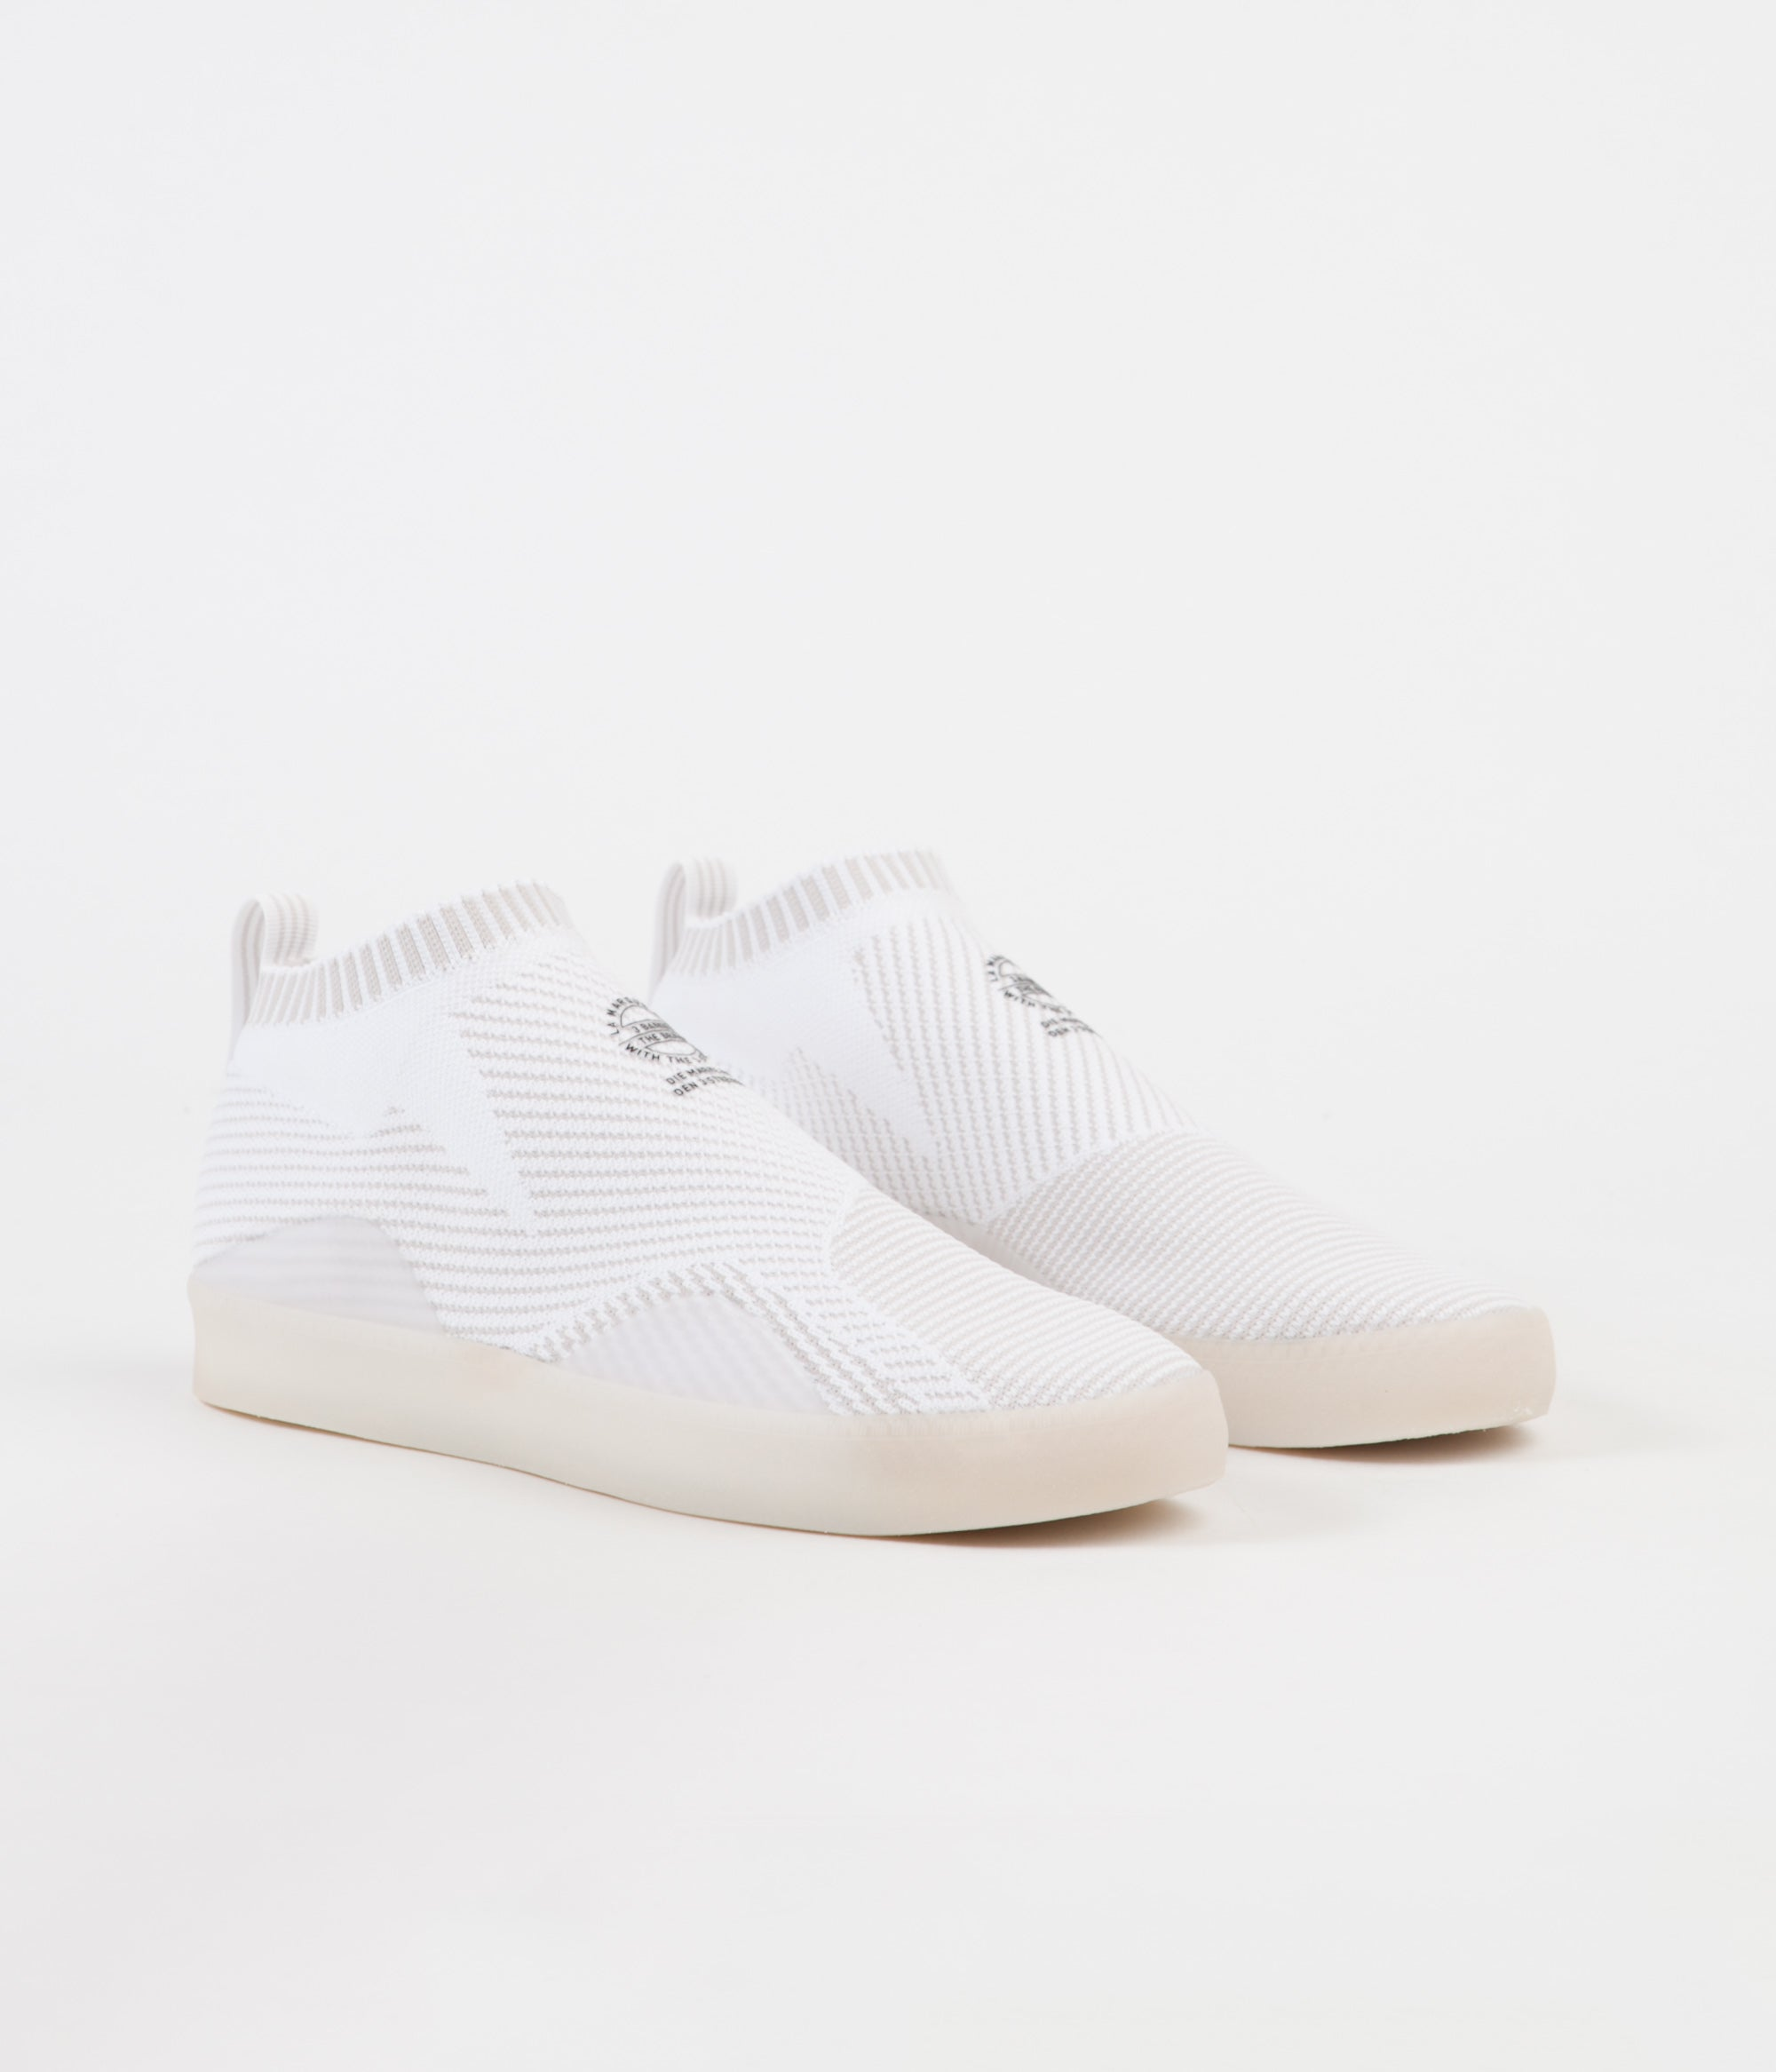 huge discount 4cbed cfdc6 Adidas 3ST.002 Primeknit Shoes - White  Grey One  Core Black